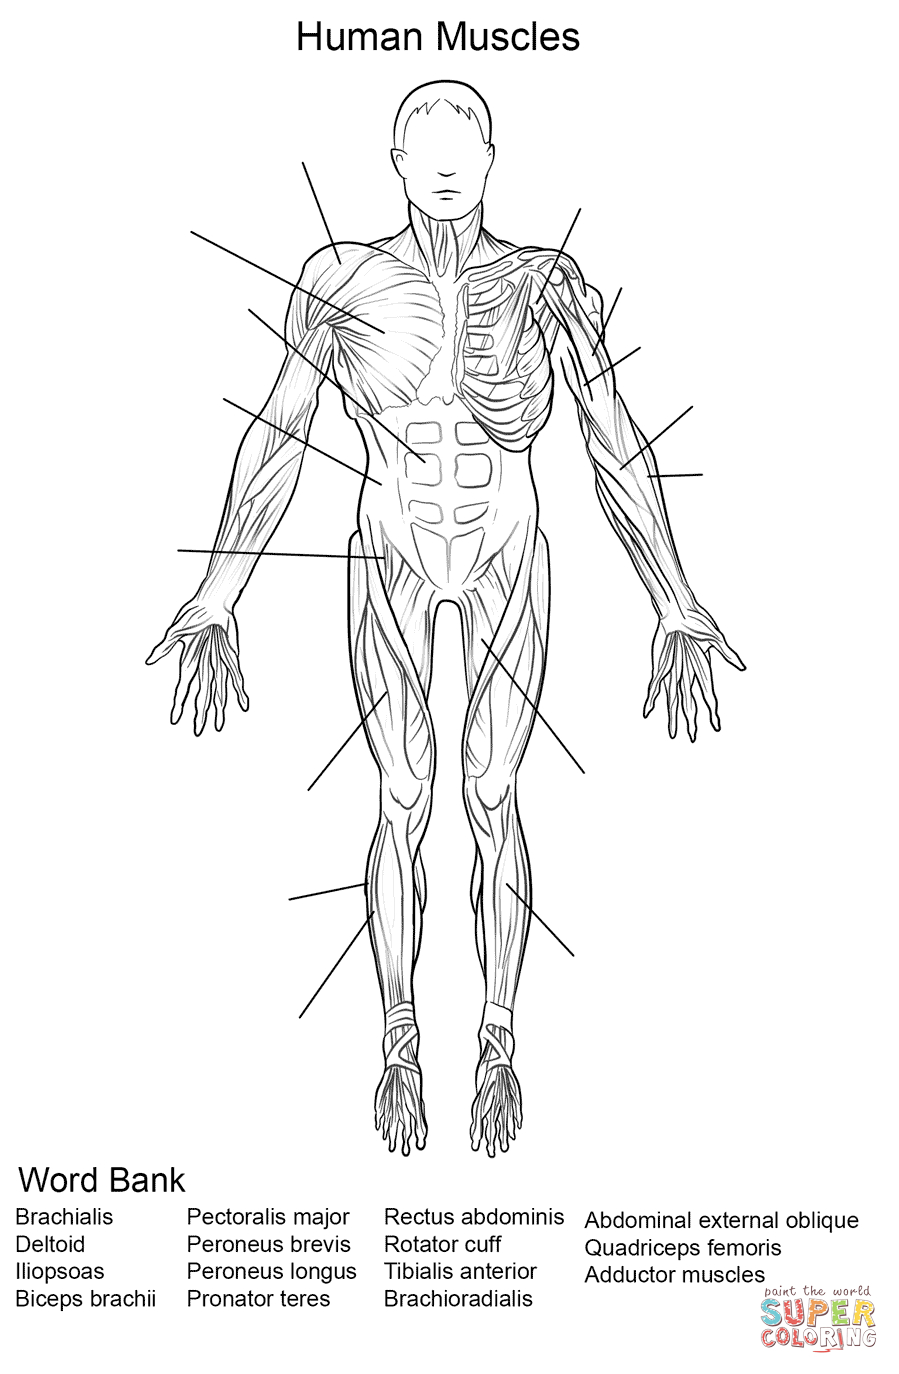 human anatomy coloring pages human body systems coloring pages coloring home human pages anatomy coloring